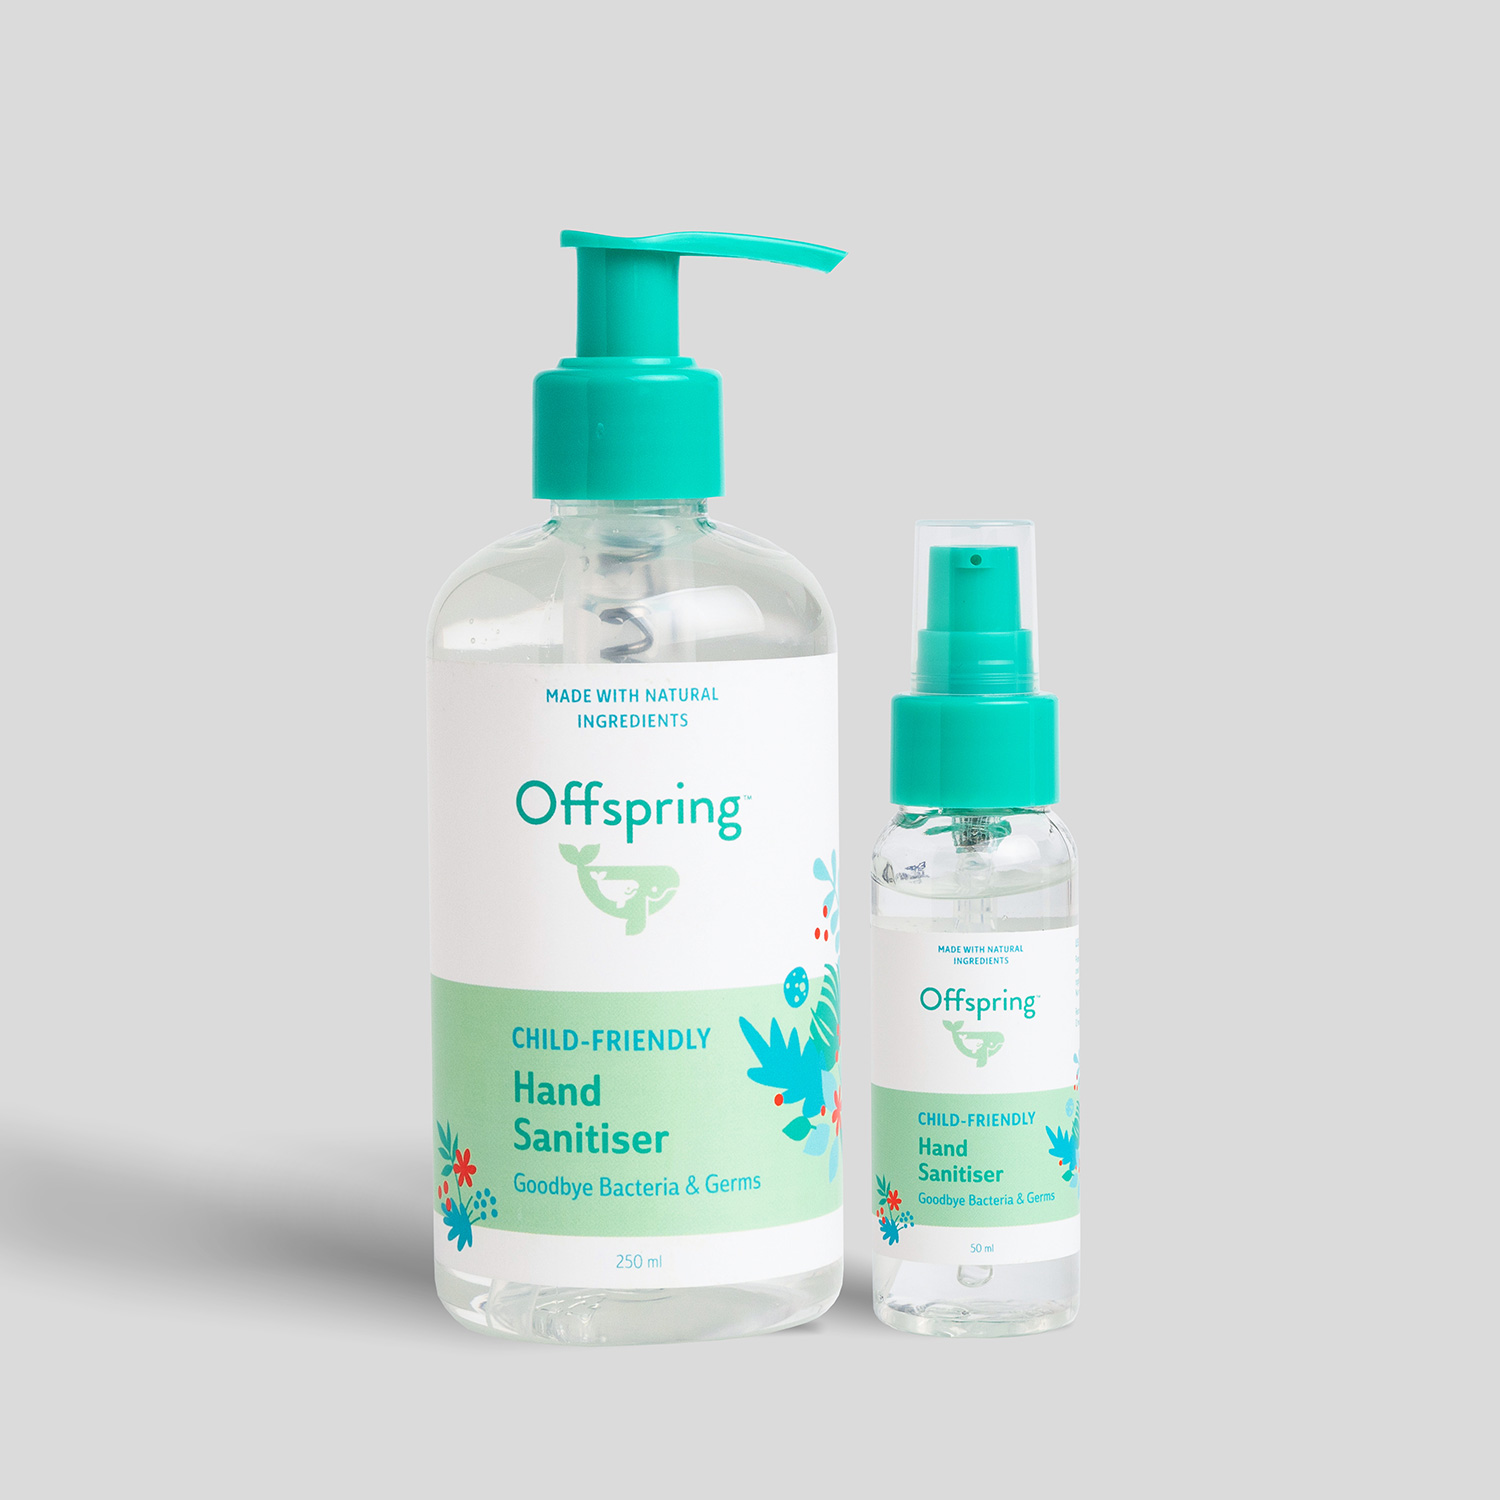 Child-Friendly Hand Sanitiser